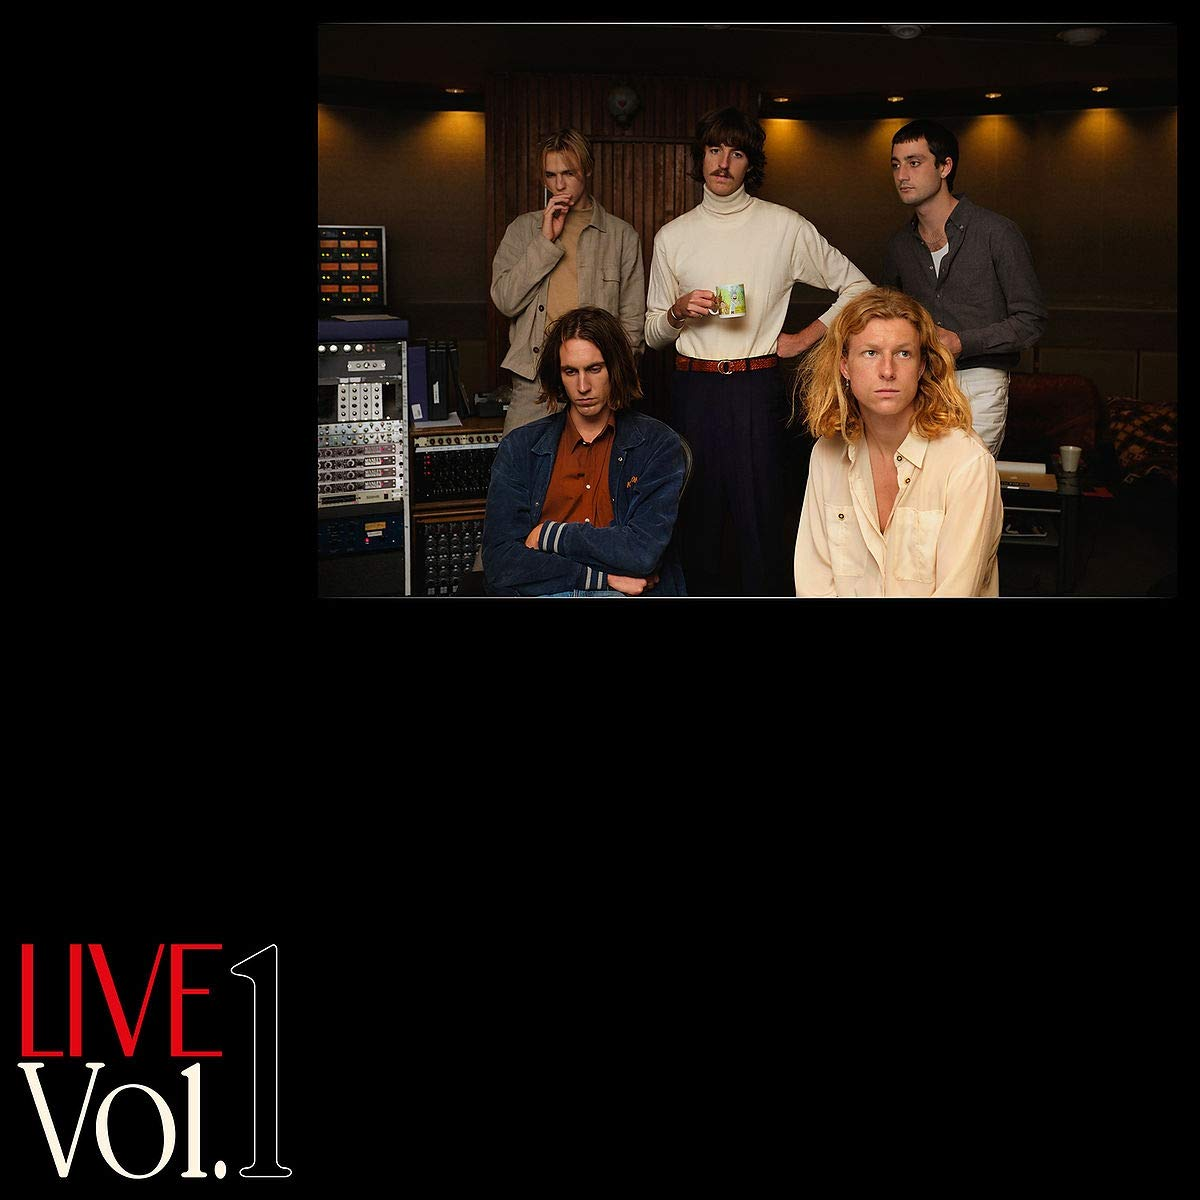 Parcels - Live Vol. 1 [2 LP]